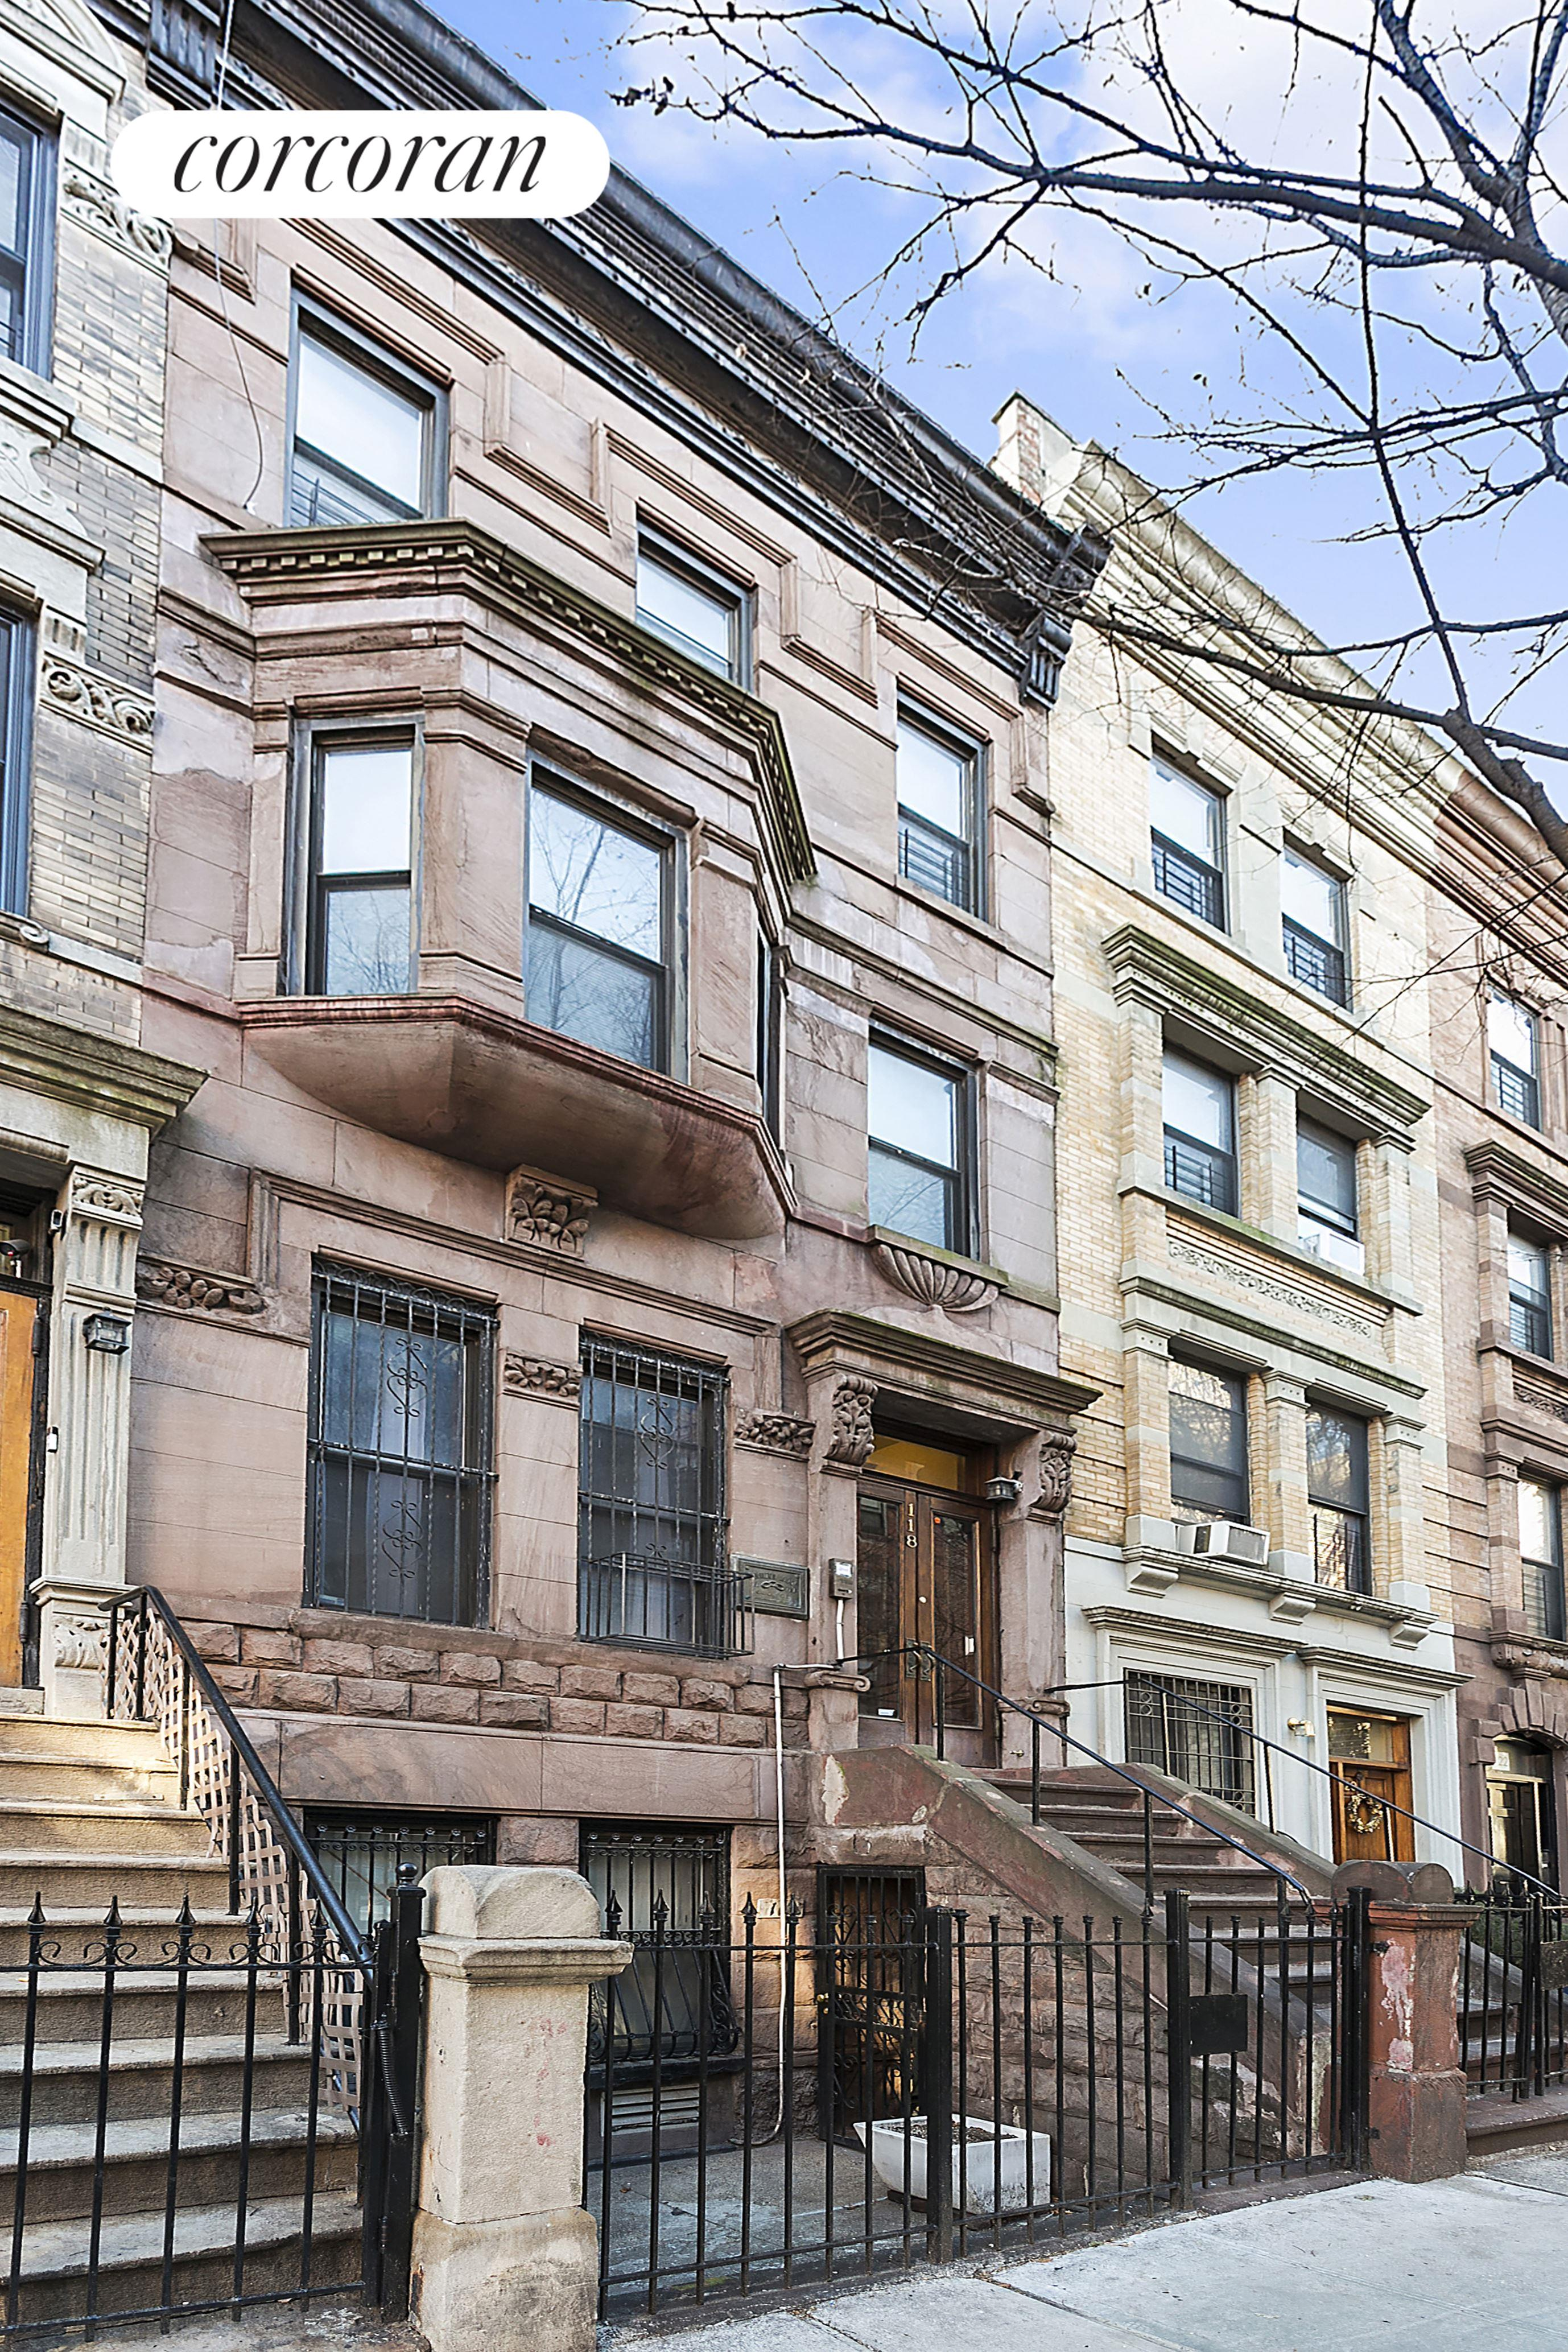 118 West 111TH STREET, 1, Building Exterior